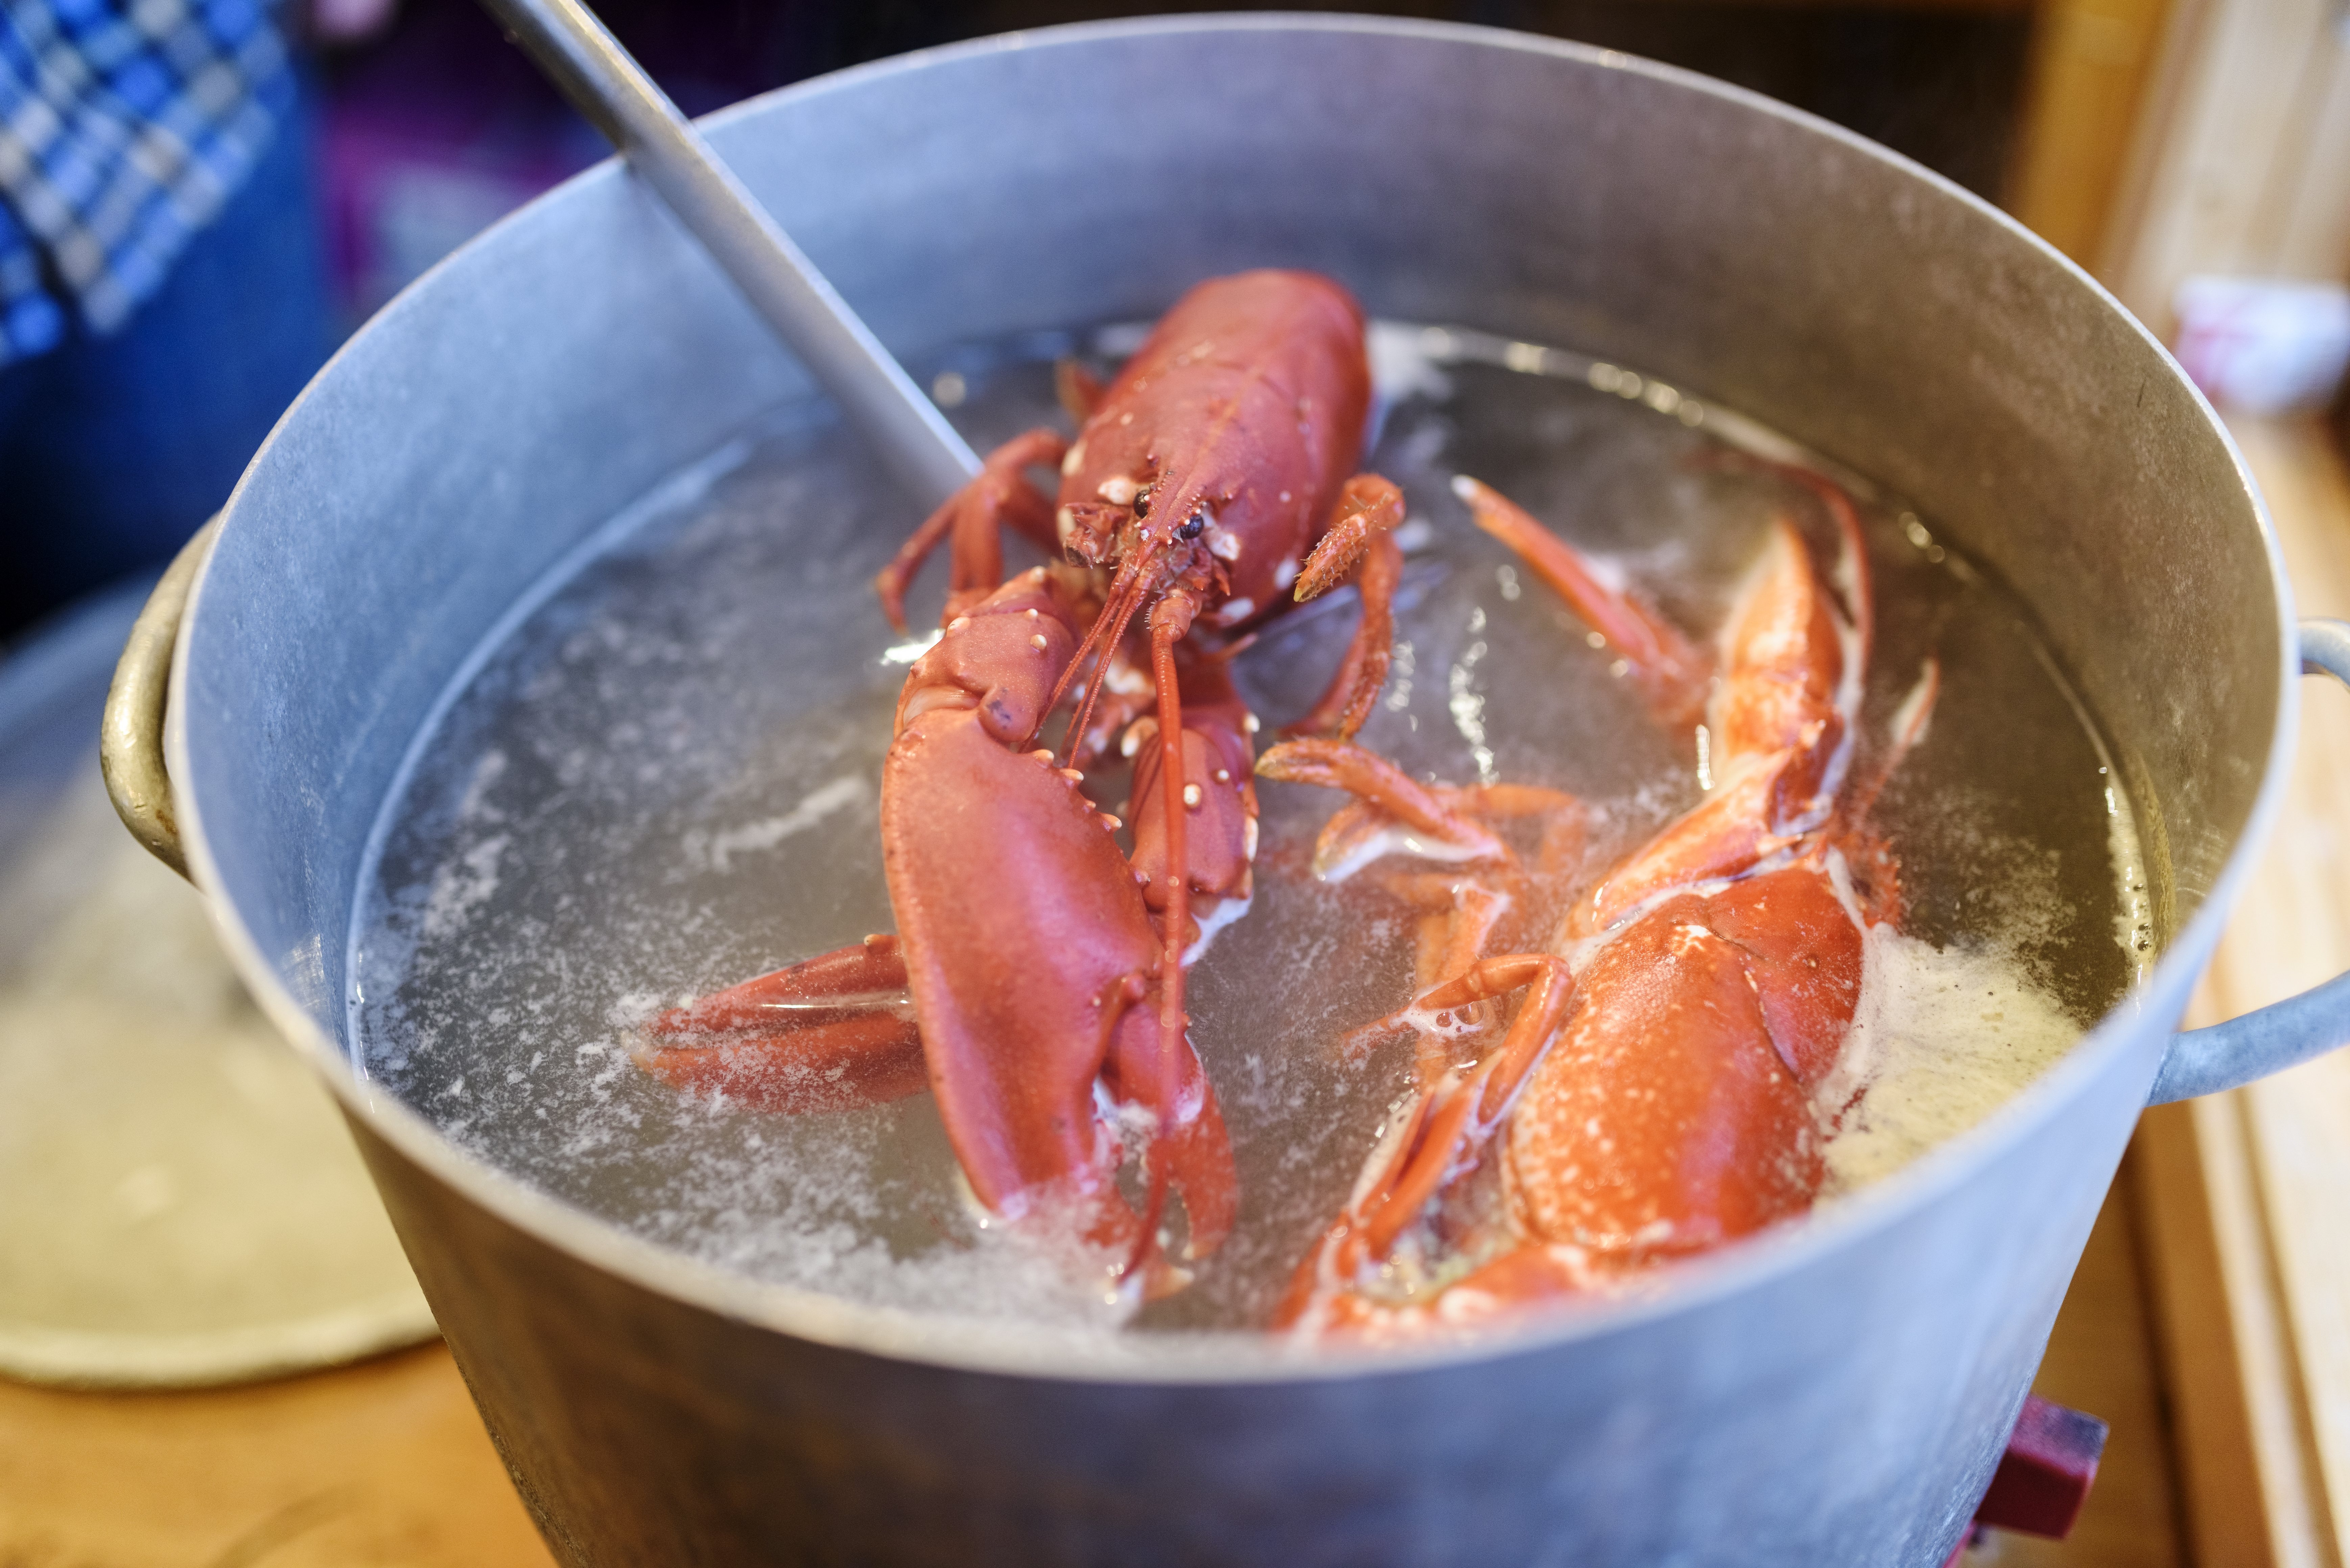 Boiling lobsters